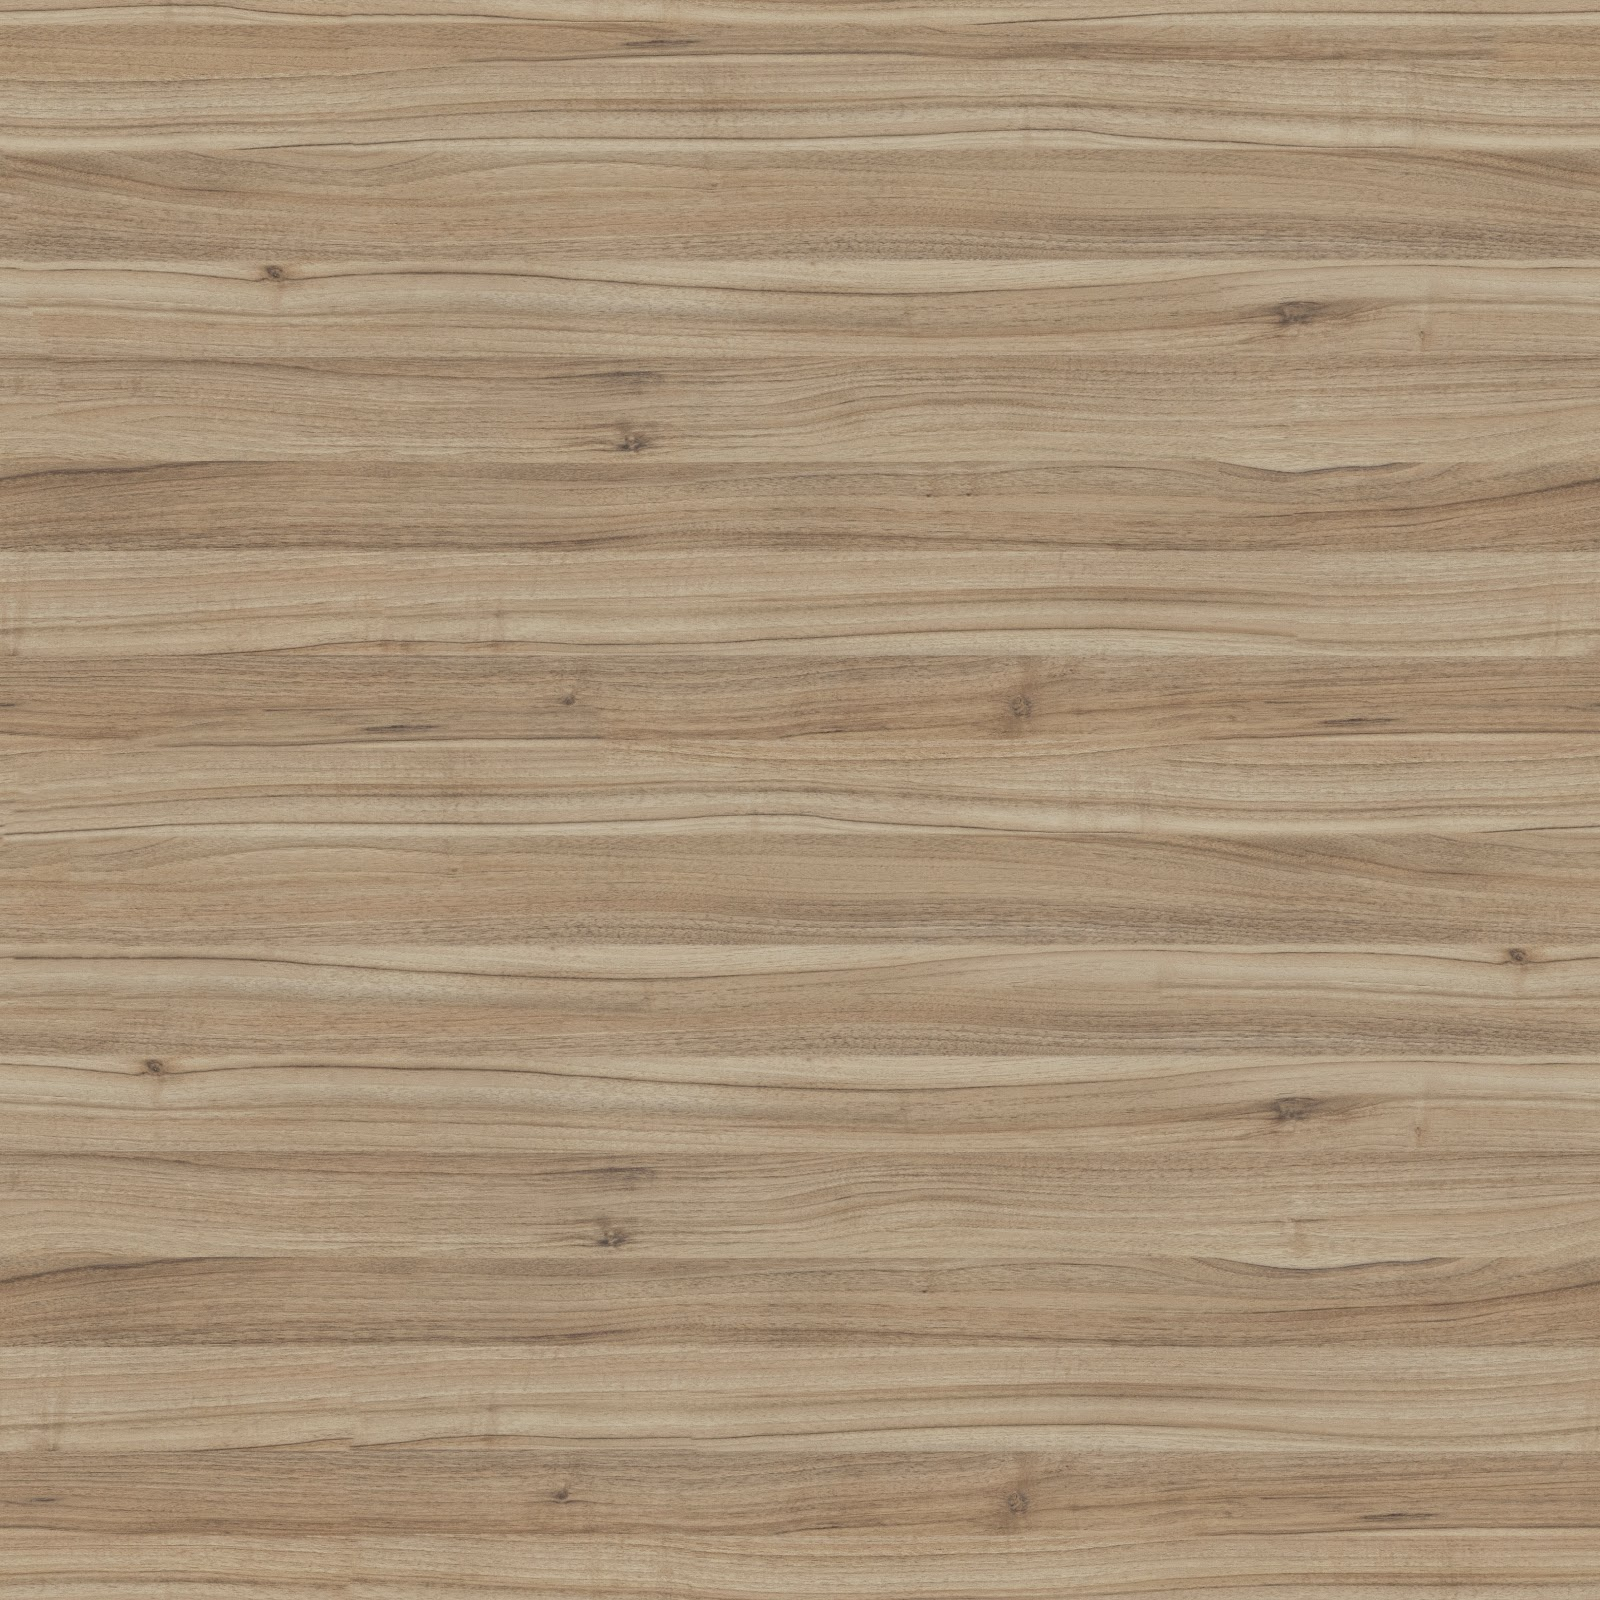 Laminate Flooring Texture Seamless Wood Floor Bleached Oak Recherche Google CYSSWYX